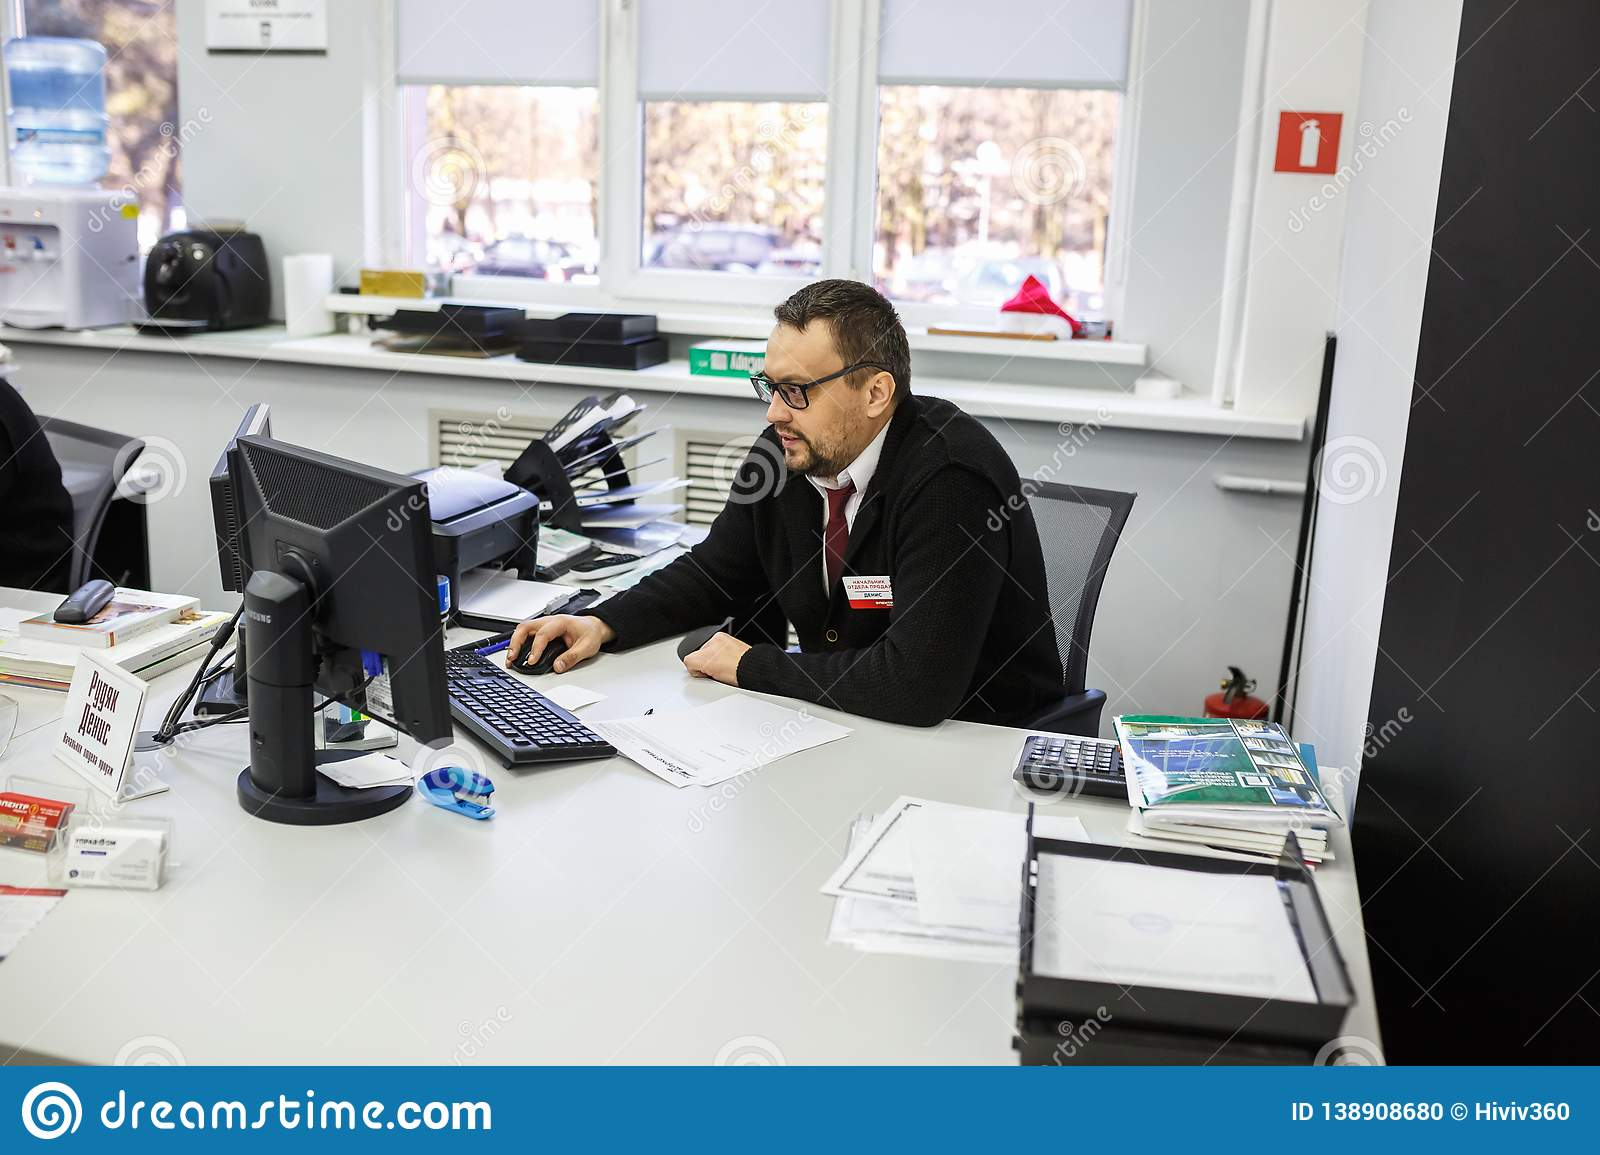 GRODNO, BELARUS - AUGUST 2017: employees to answer the call in the store at work at the computer in modern shop